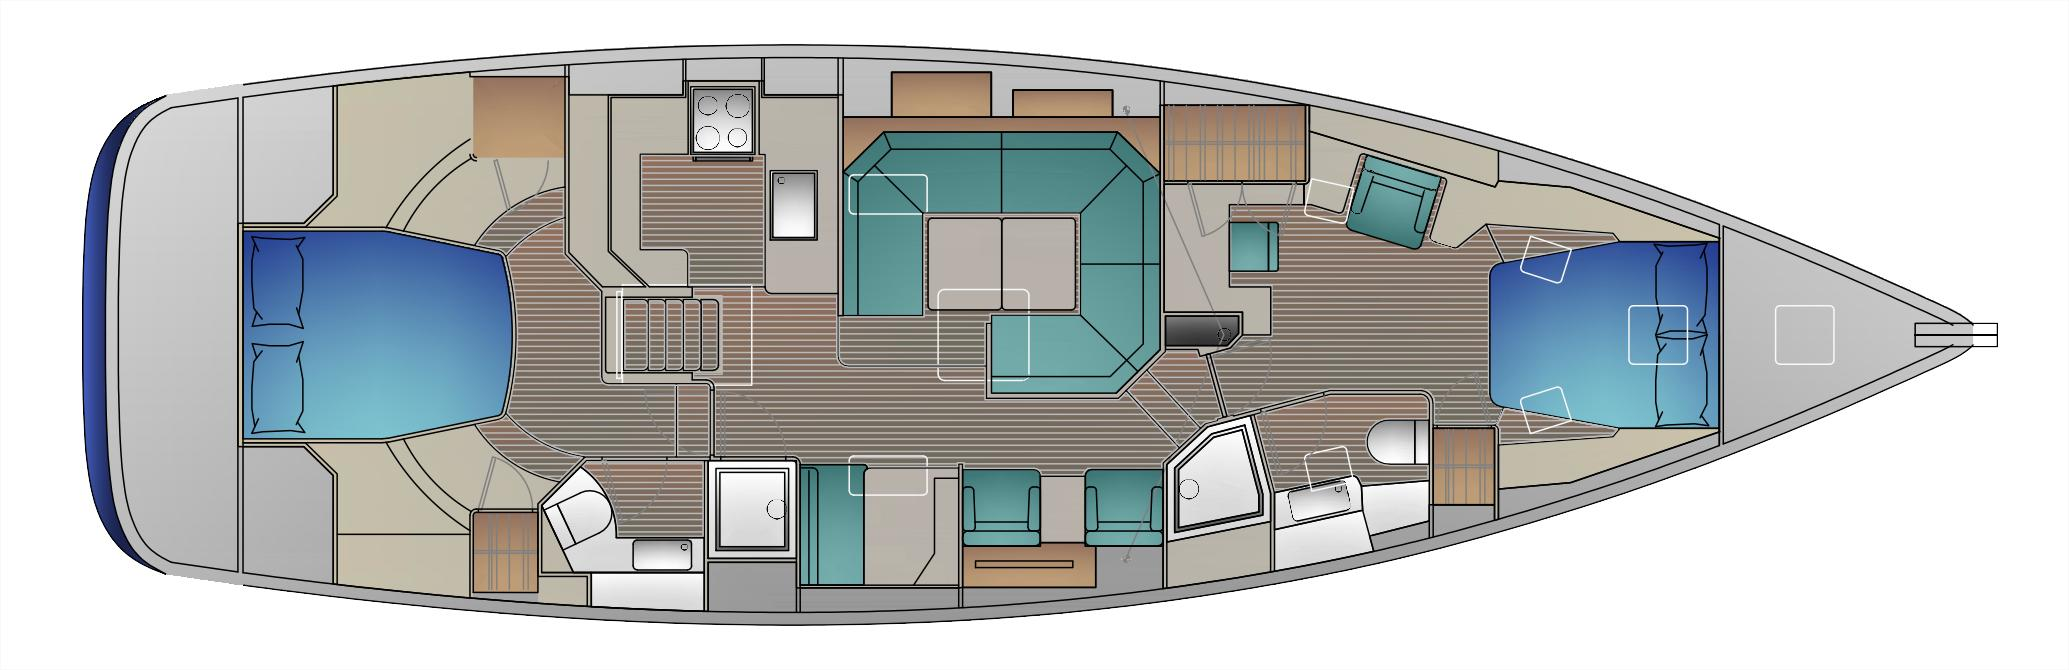 2-cabin layout with owner